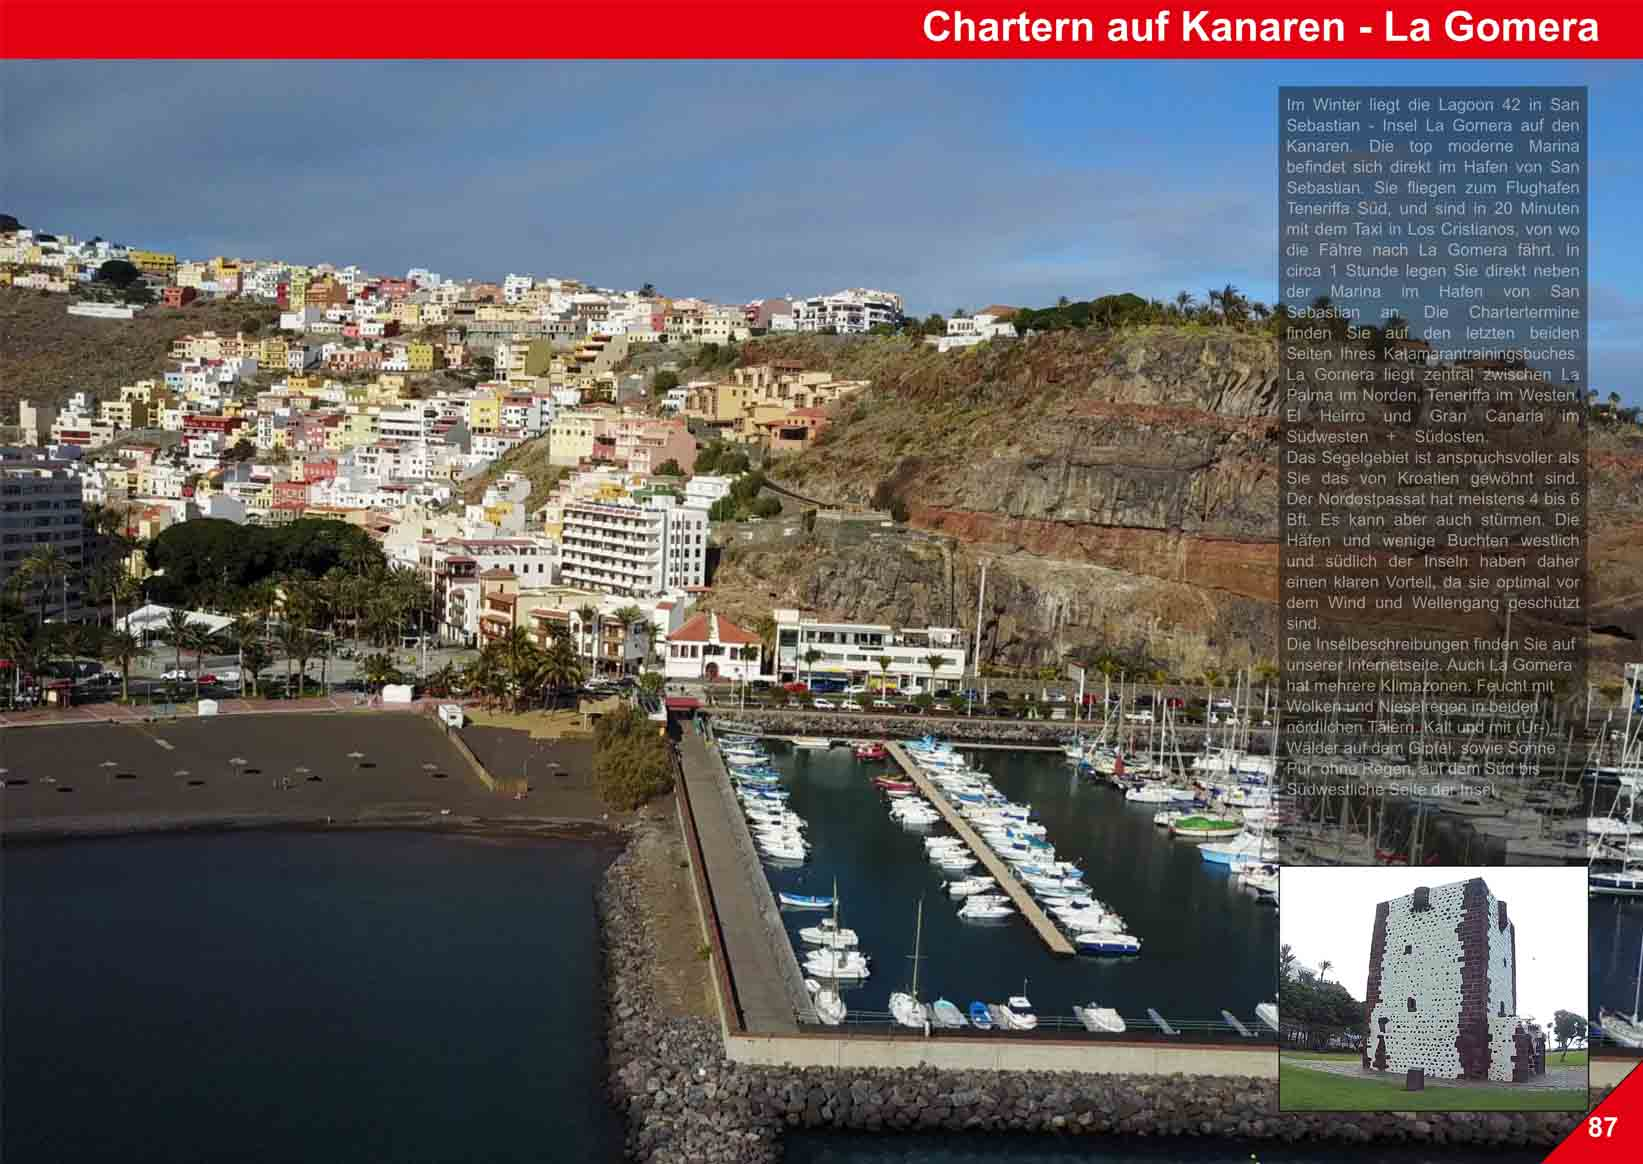 Marina La Gomera - Canary Islands